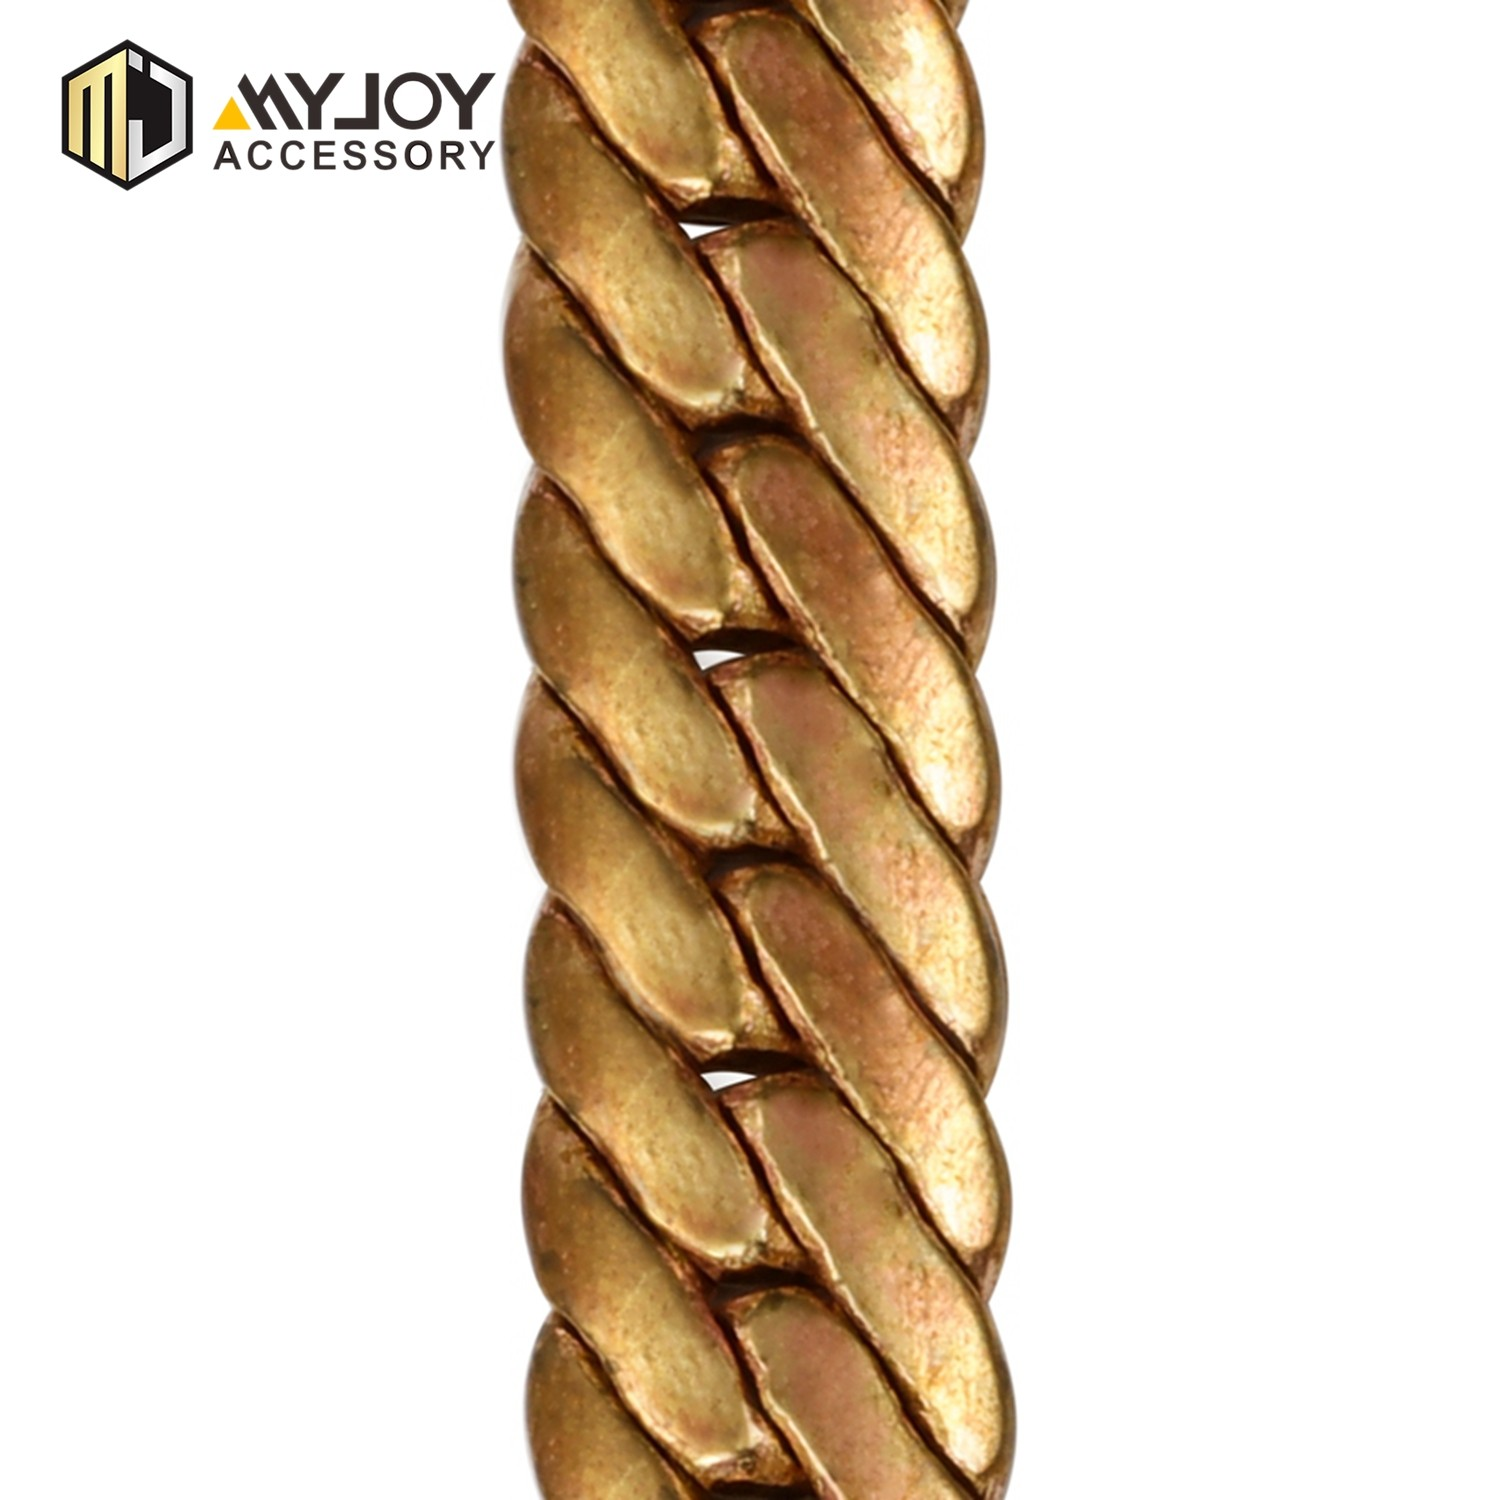 MYJOY High-quality bag chain manufacturers for purses-1